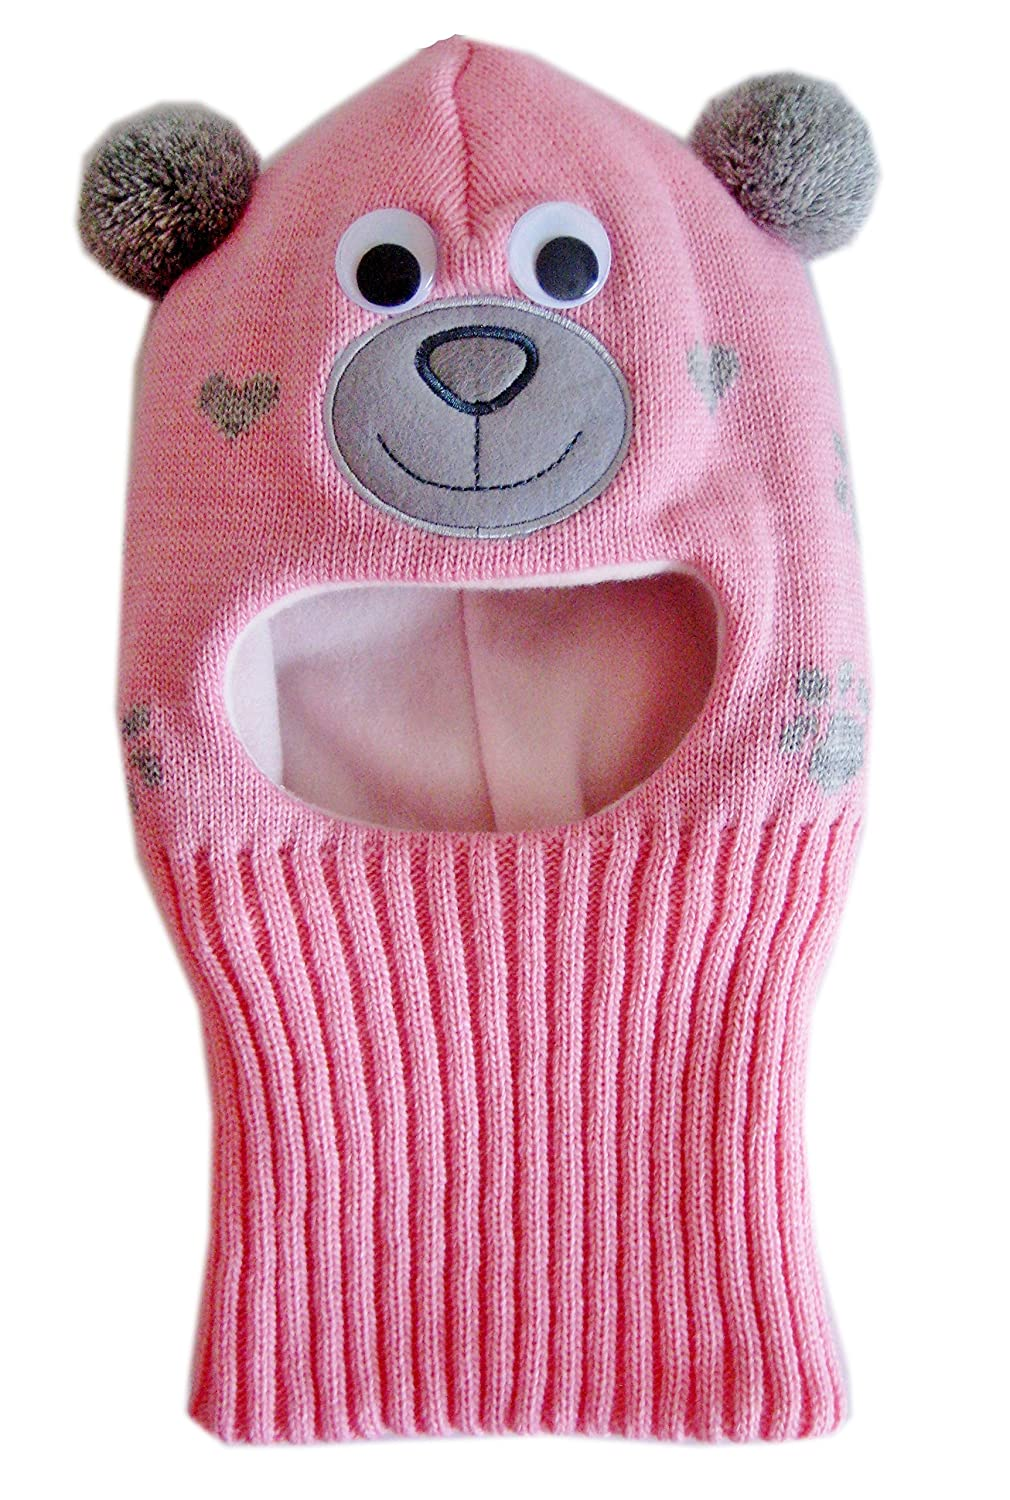 Frost Hats Warm Fleece Lined Toddler Balaclava M-BAL-BEARG M-BAL-BEARG-PNK